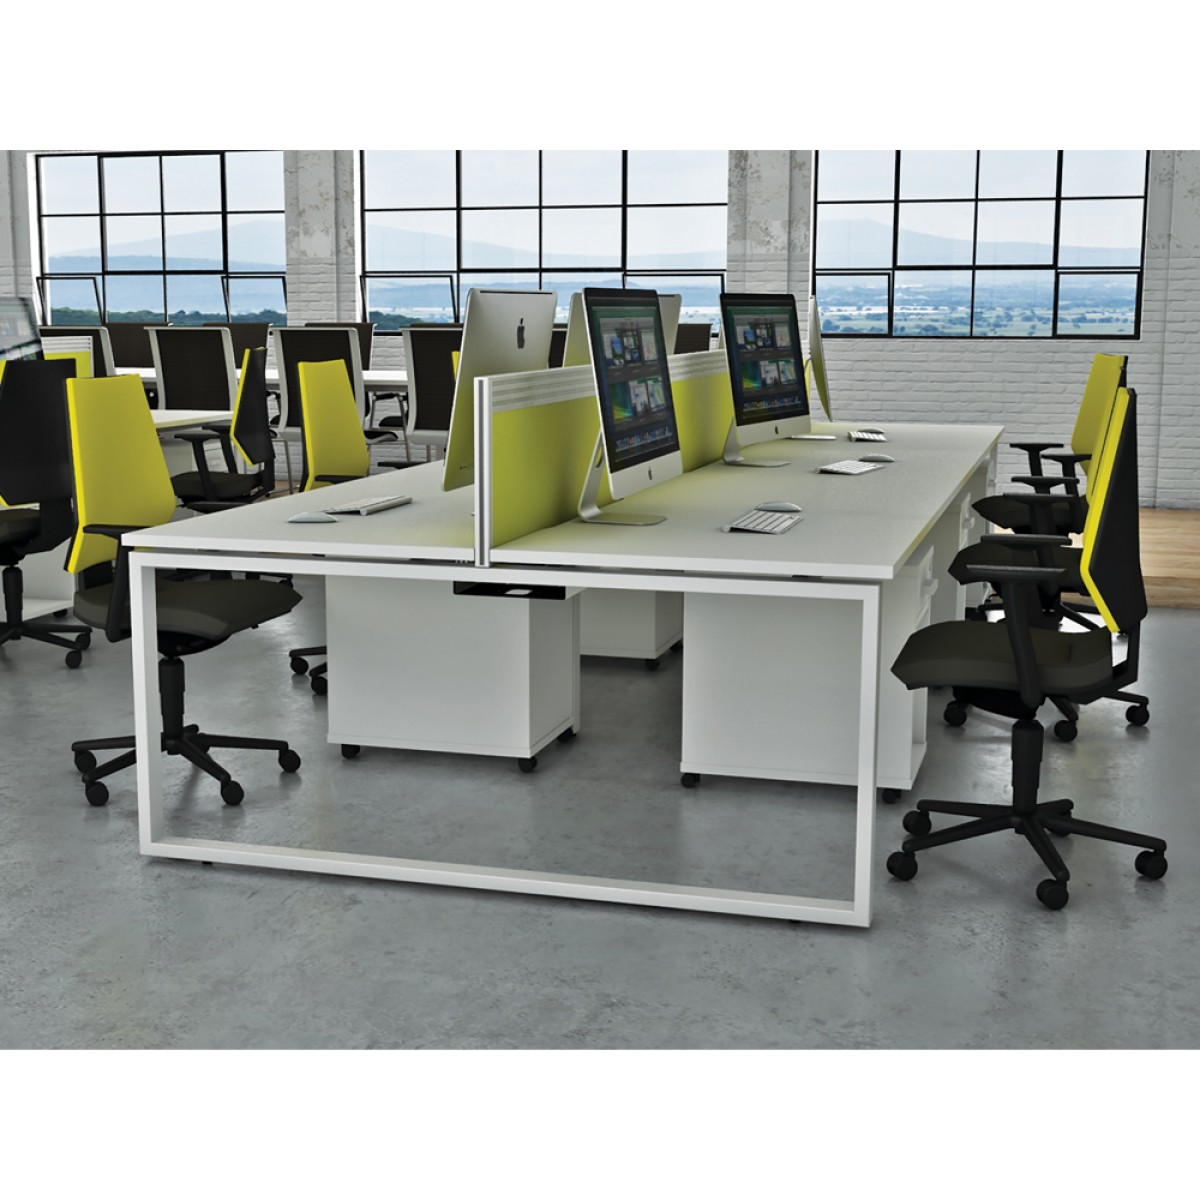 White Office Desk Dual Ibench 06 Office Furniture London